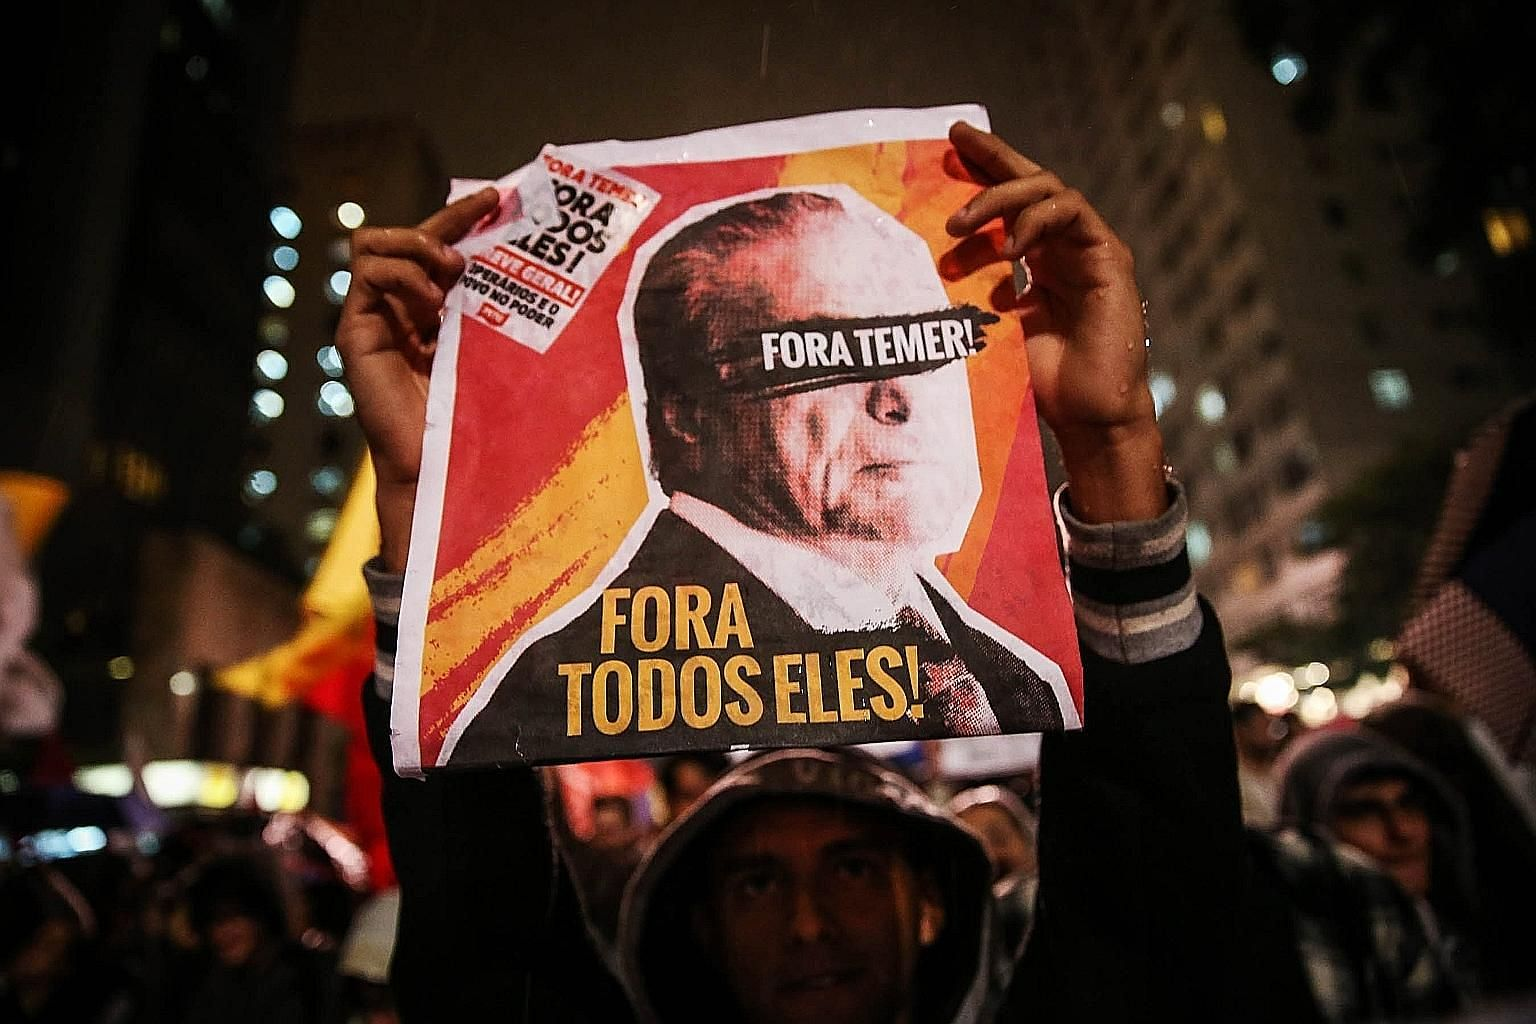 """A protester holding up a sign reading """"Out Temer! Out with them all!"""" in Sao Paulo, Brazil, yesterday. Thousands took to the streets in several cities to protest against the government of President Michel Temer, over allegations he is involved in a c"""